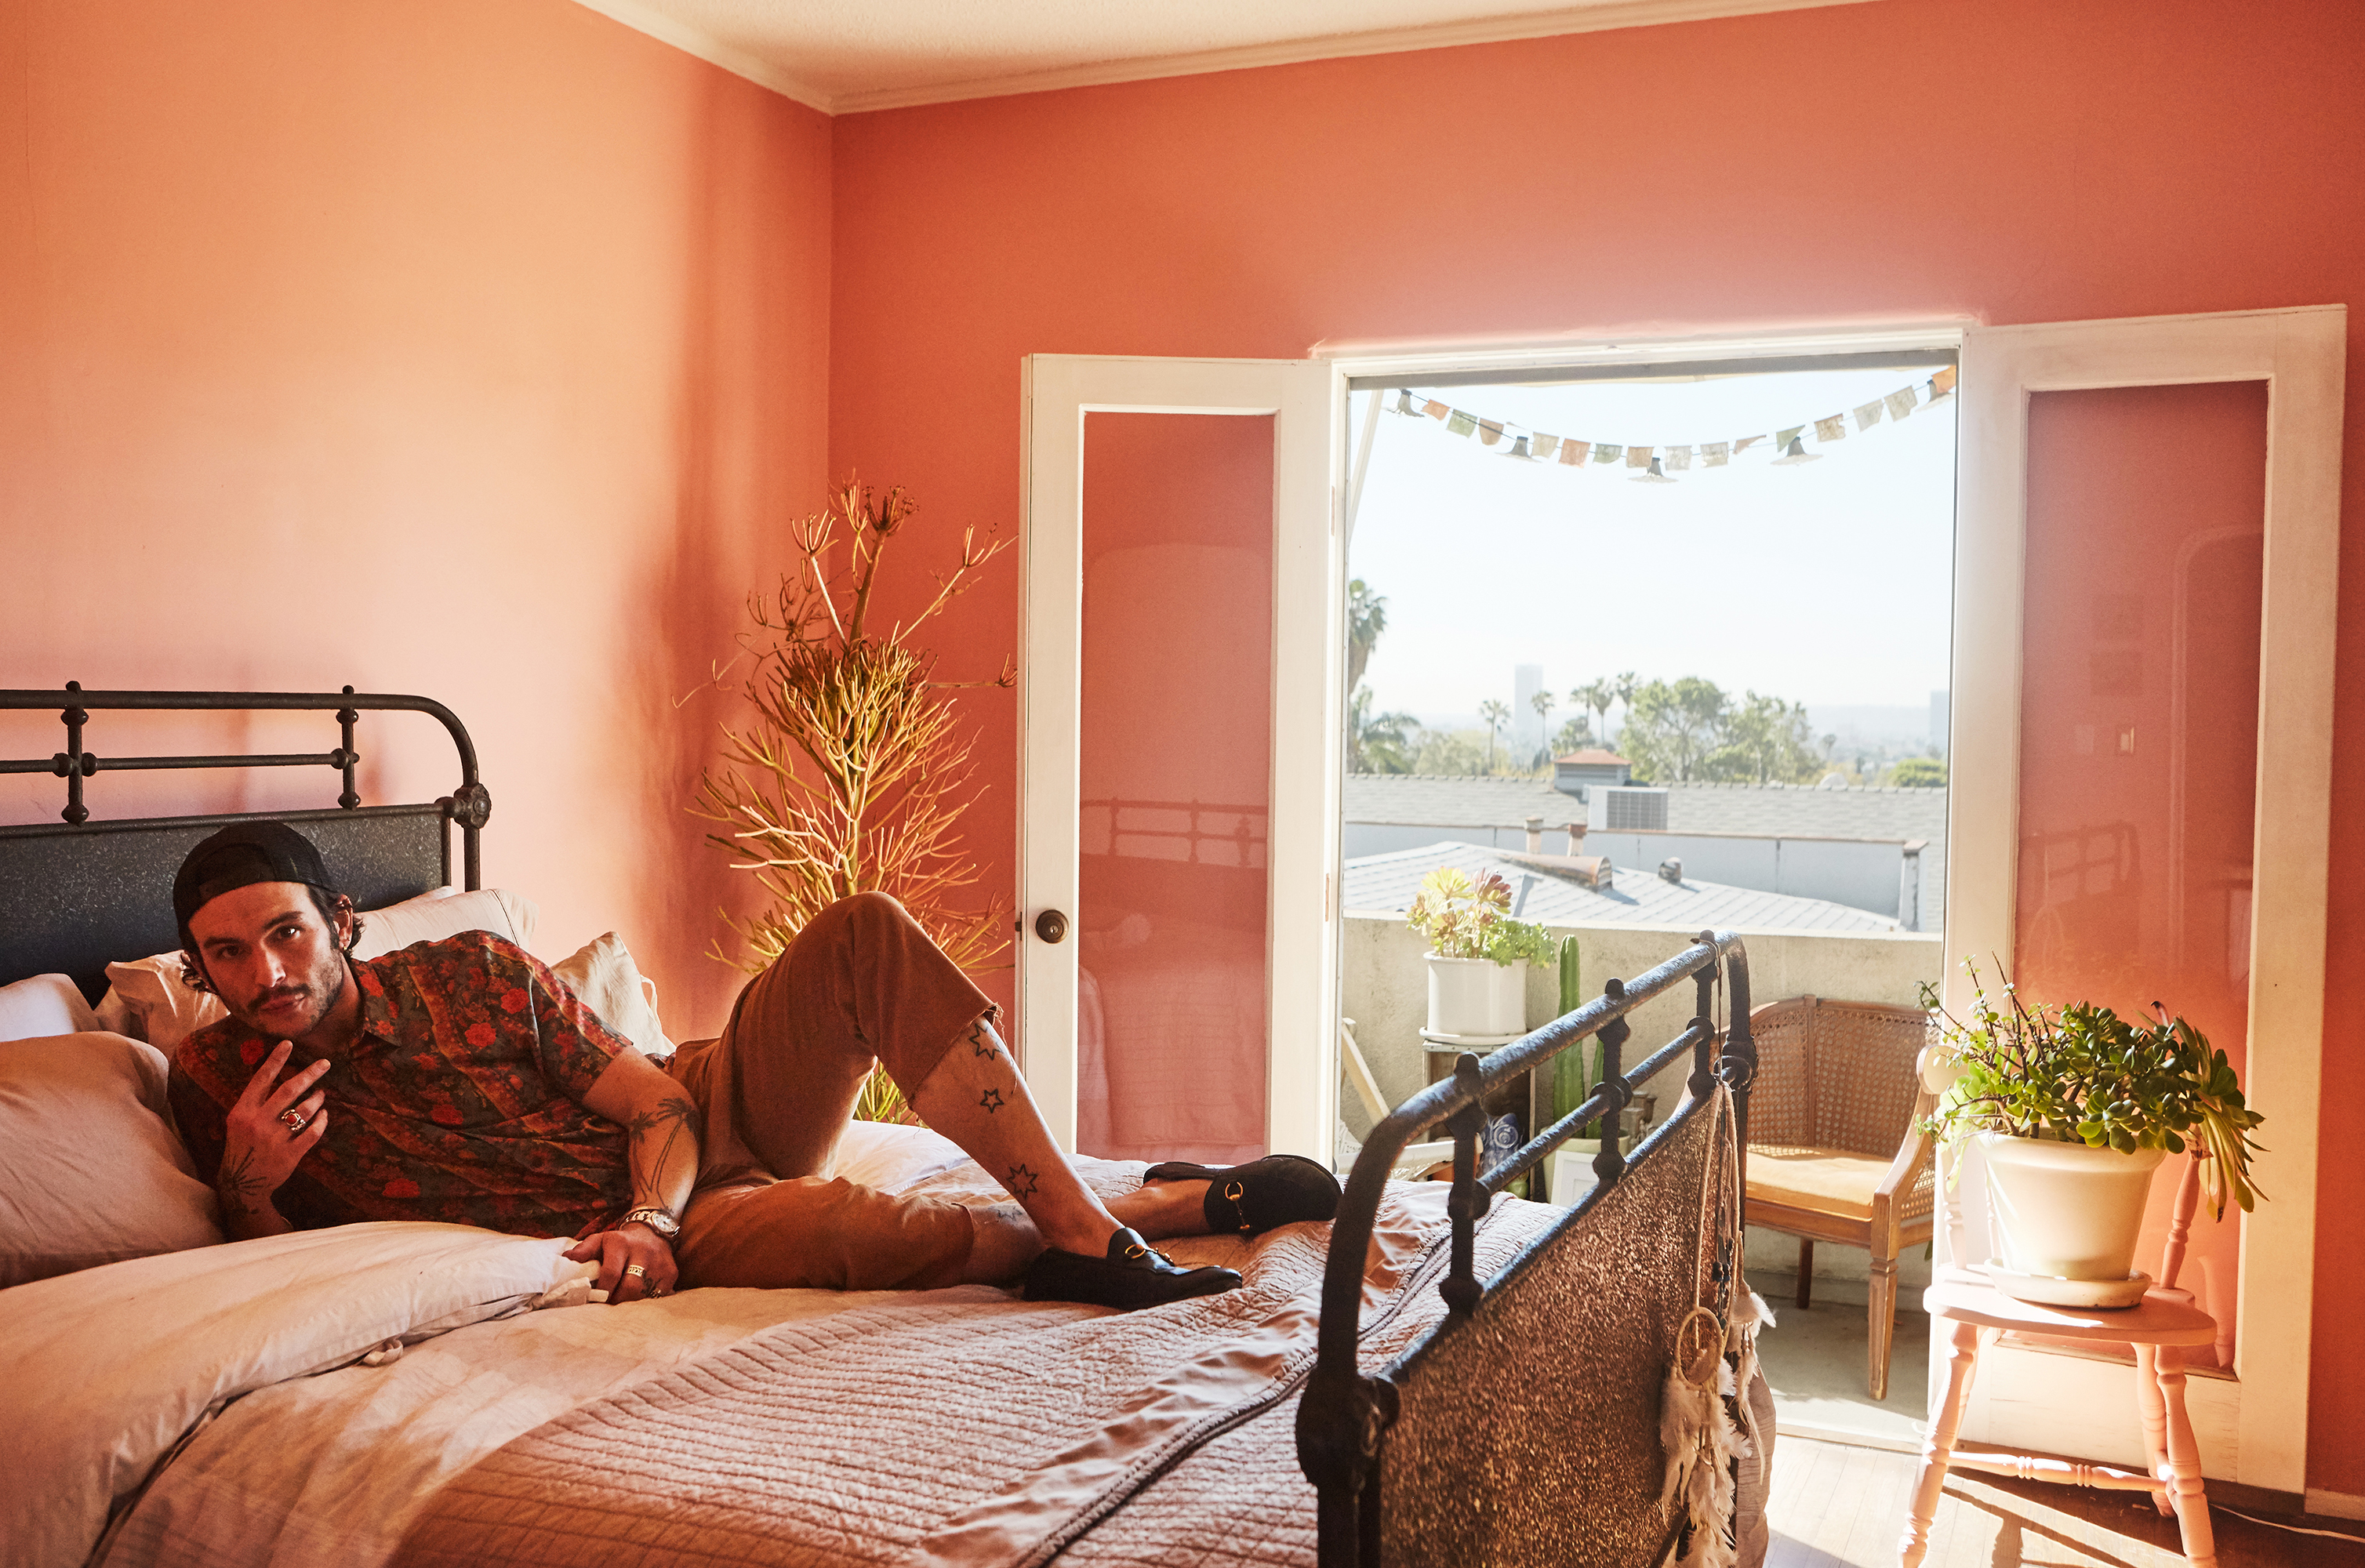 Austin-Paglialonga reclines on his bed in his pink bedroom.